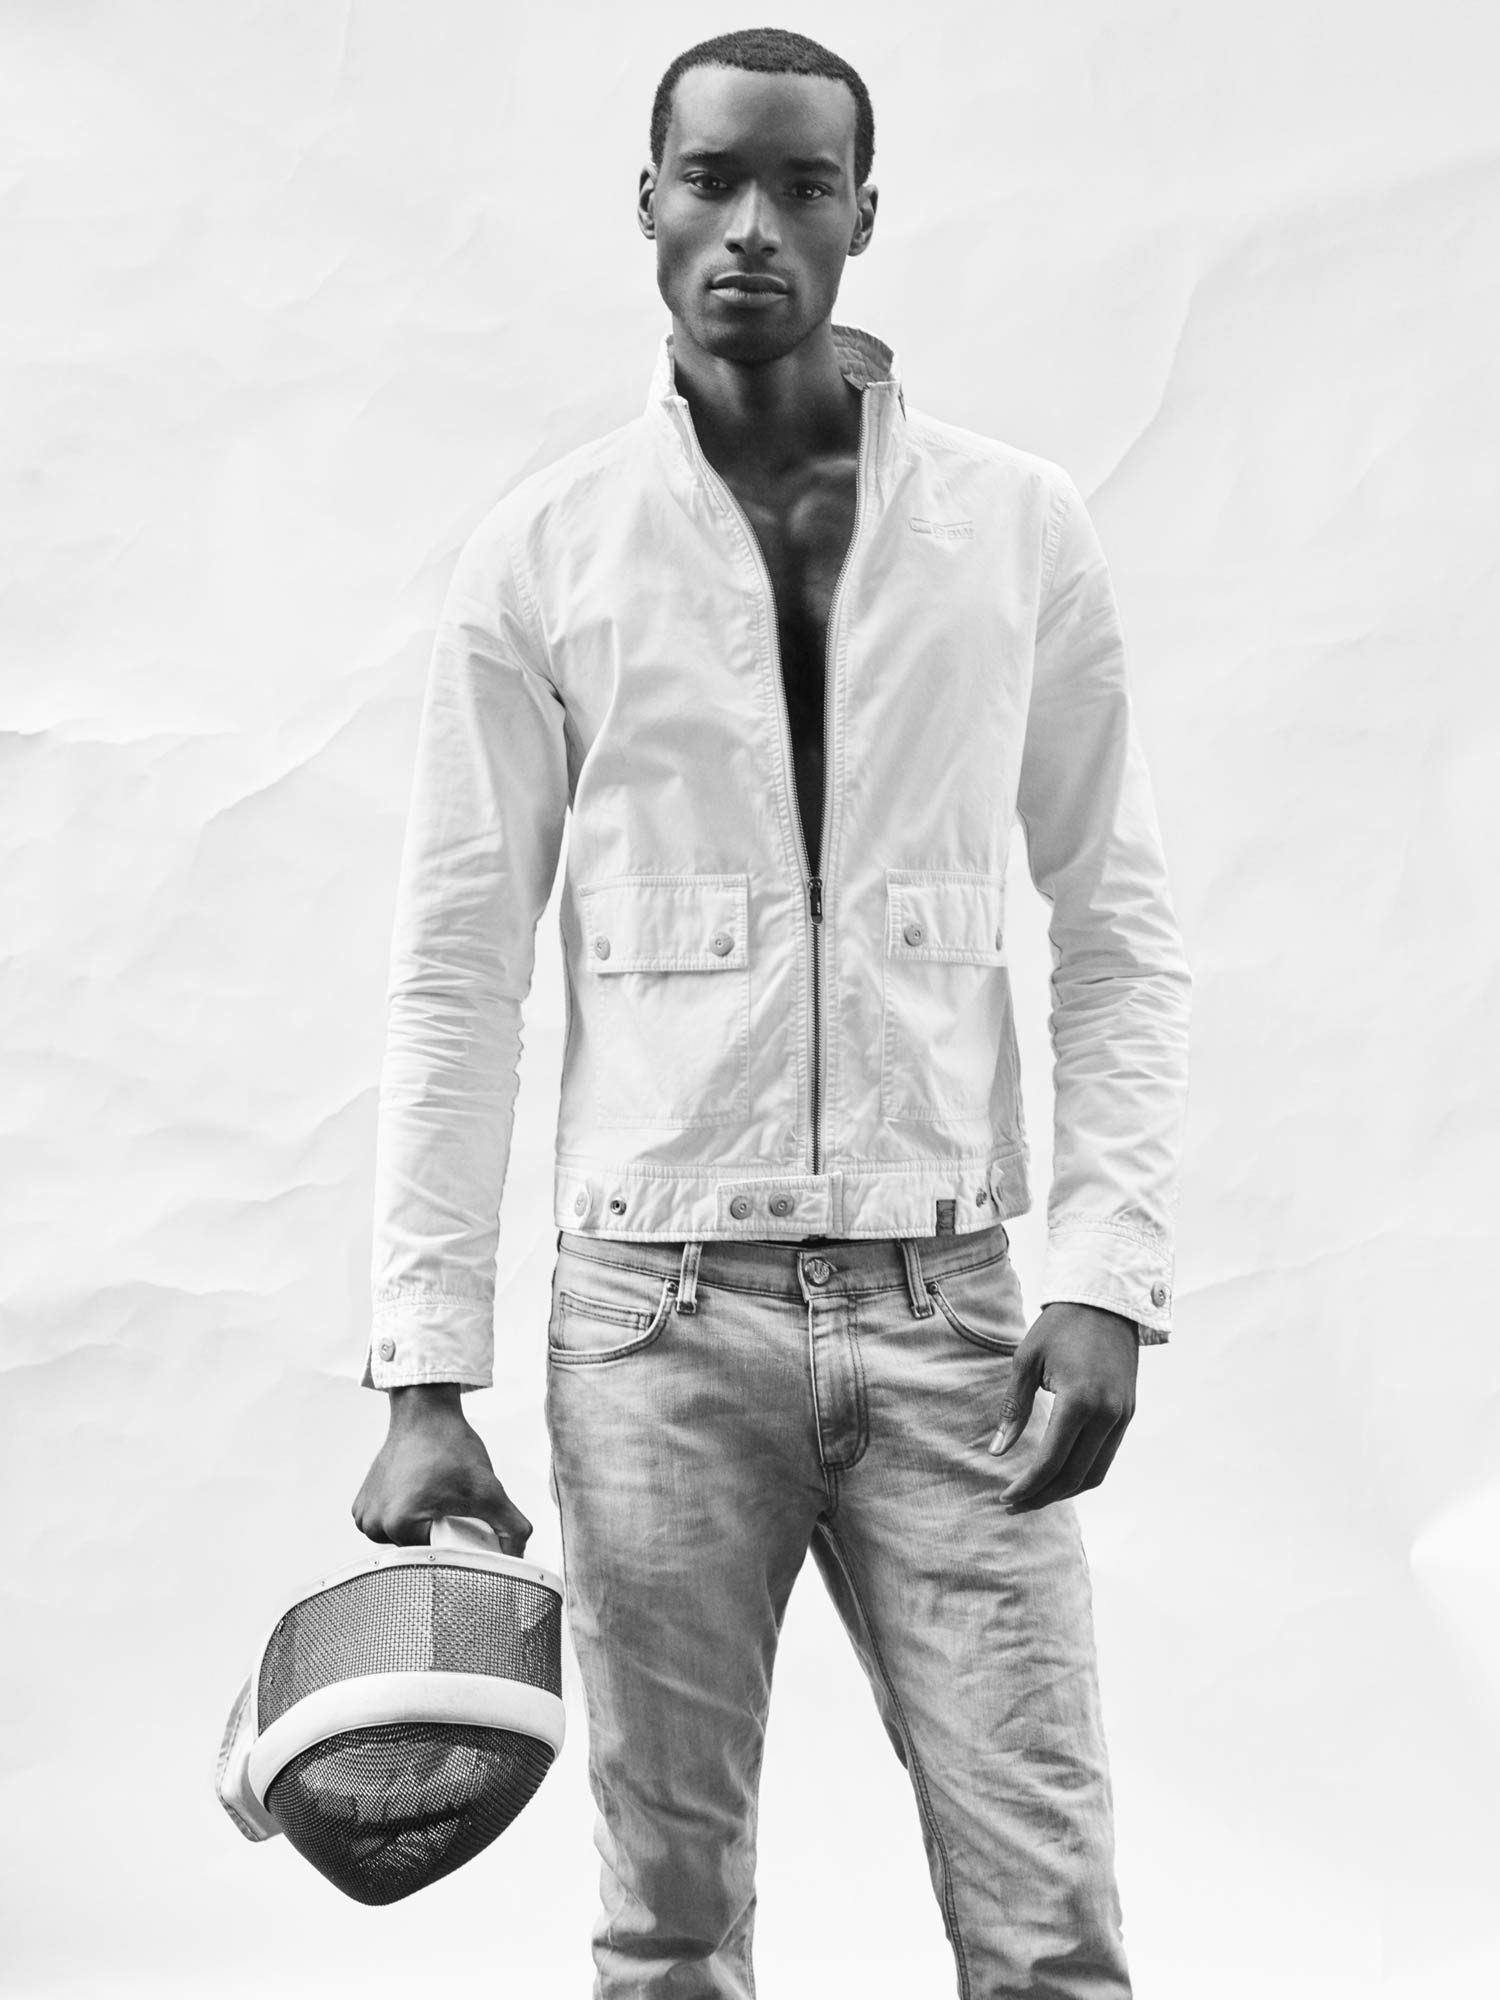 Corey Baptiste by Tomas Hein - Top Black Male Model Story for Sagaboi and Sagaboi.com.